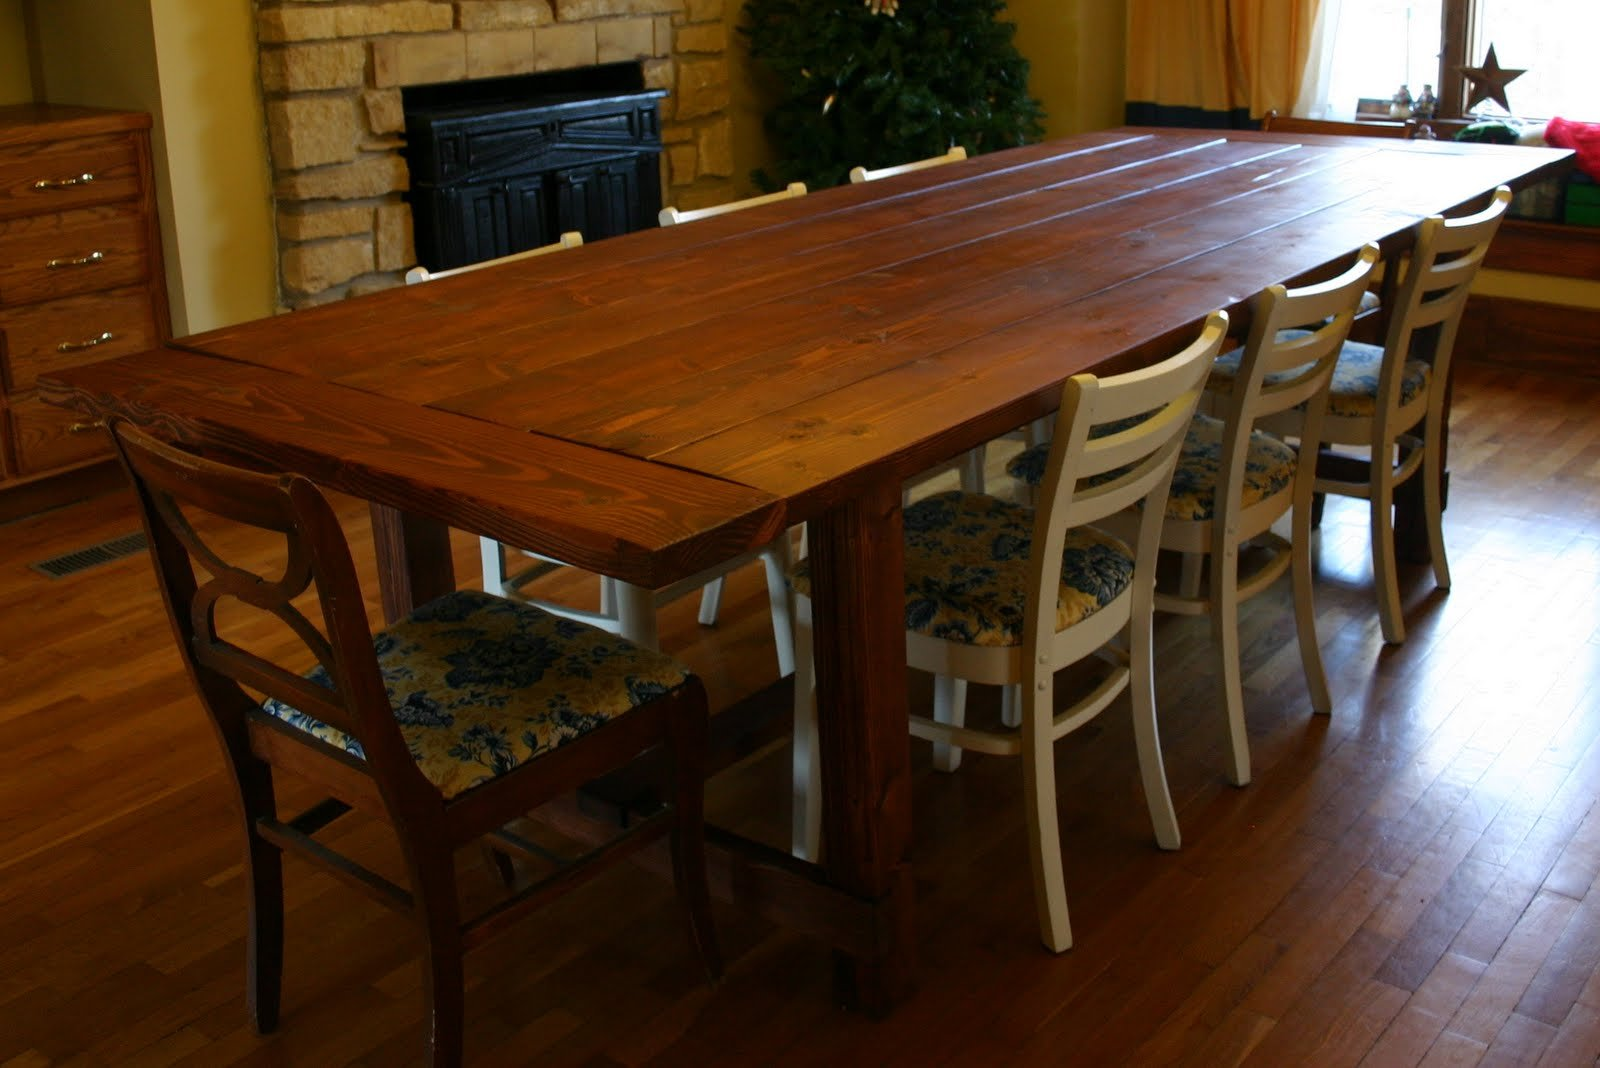 German jello salad rustic dining table i built from free Narrow farmhouse table plans